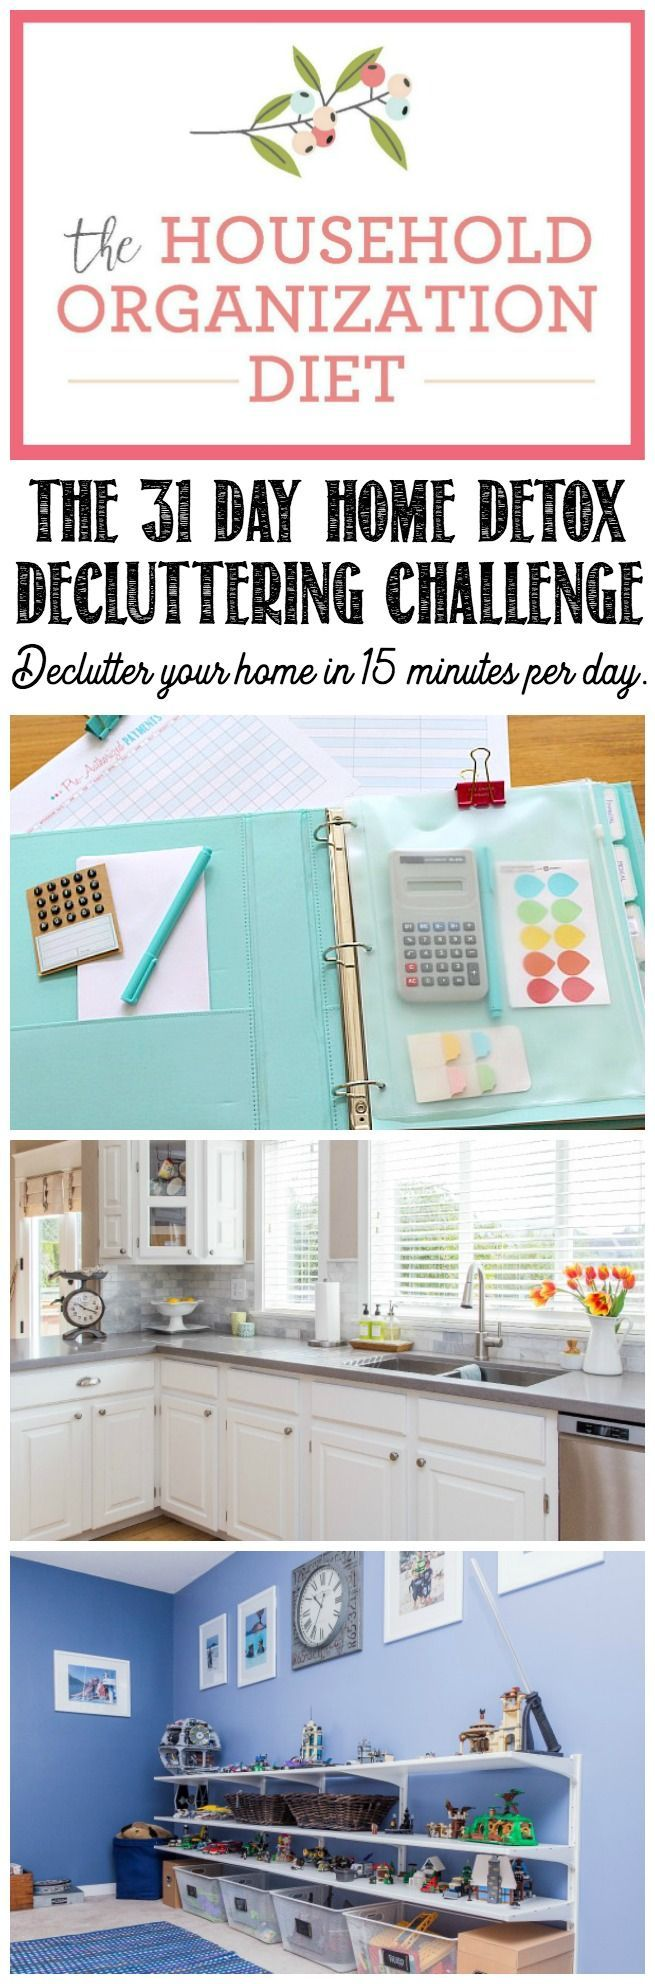 157 best Organized and Decluttered images on Pinterest ...